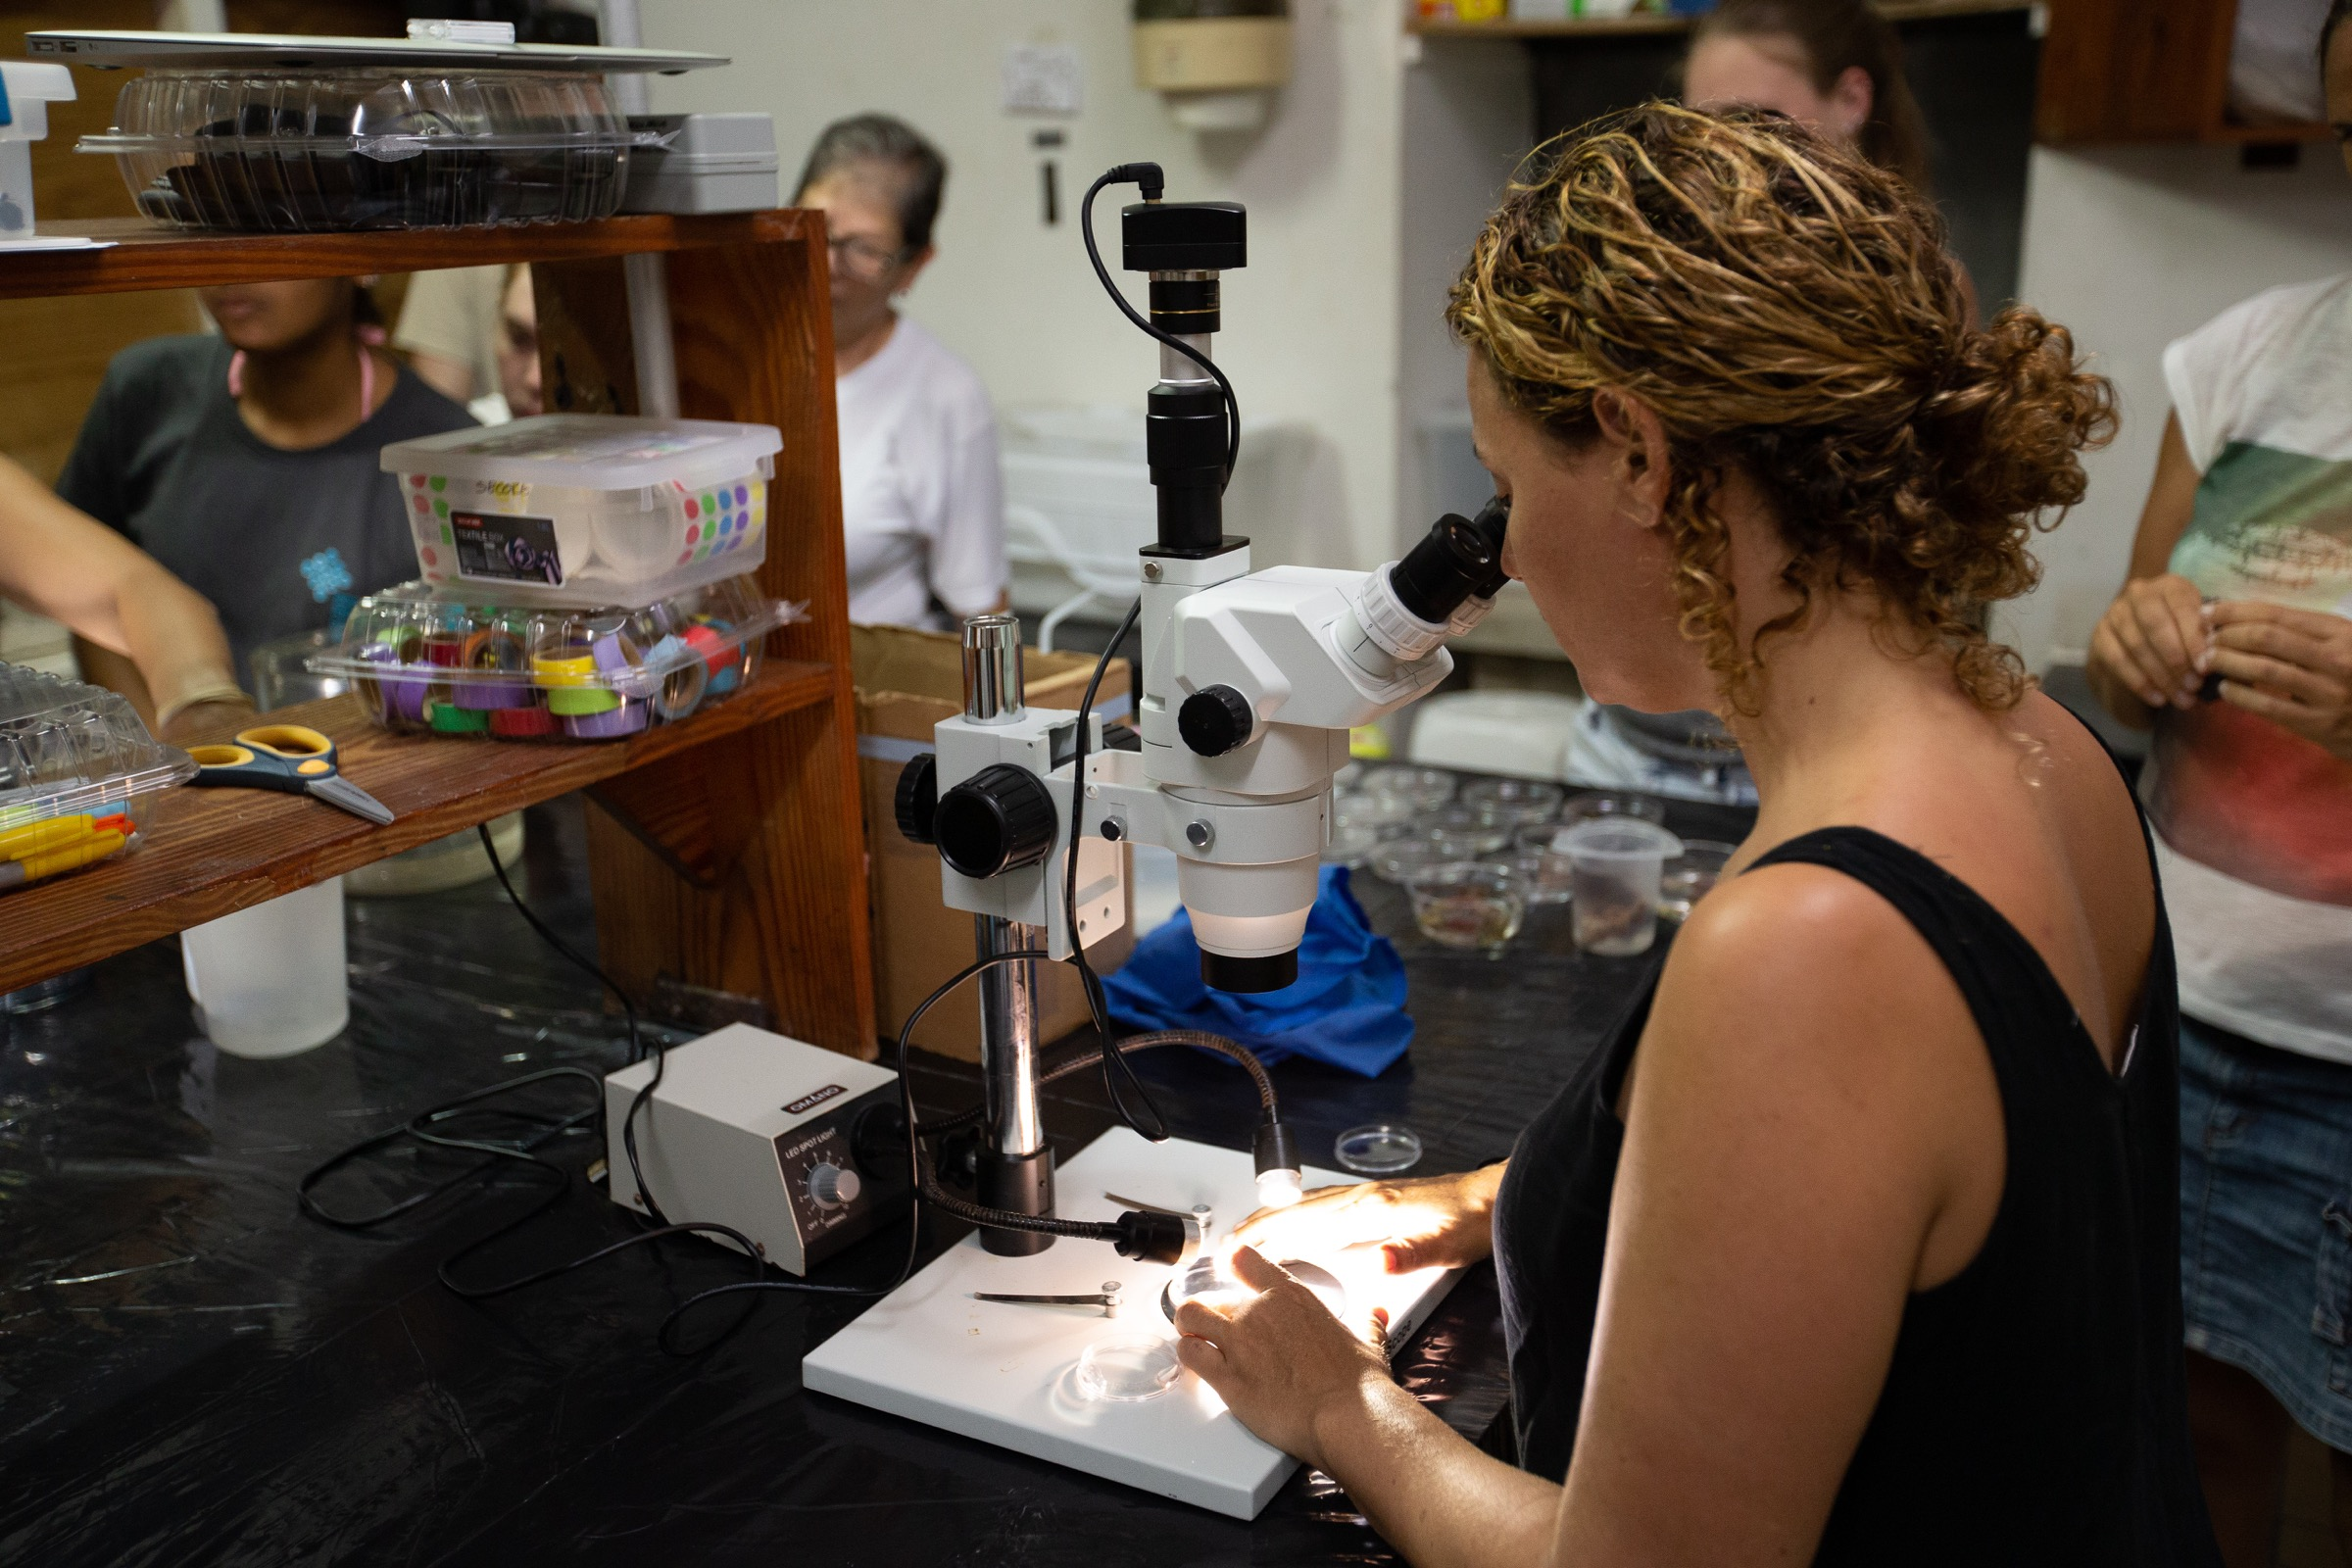 Rita Sellares, executive director of FUNDEMAR in the Dominican Republic, observes embryos through a microscope at the CARMABI Marine Research Station laboratory.